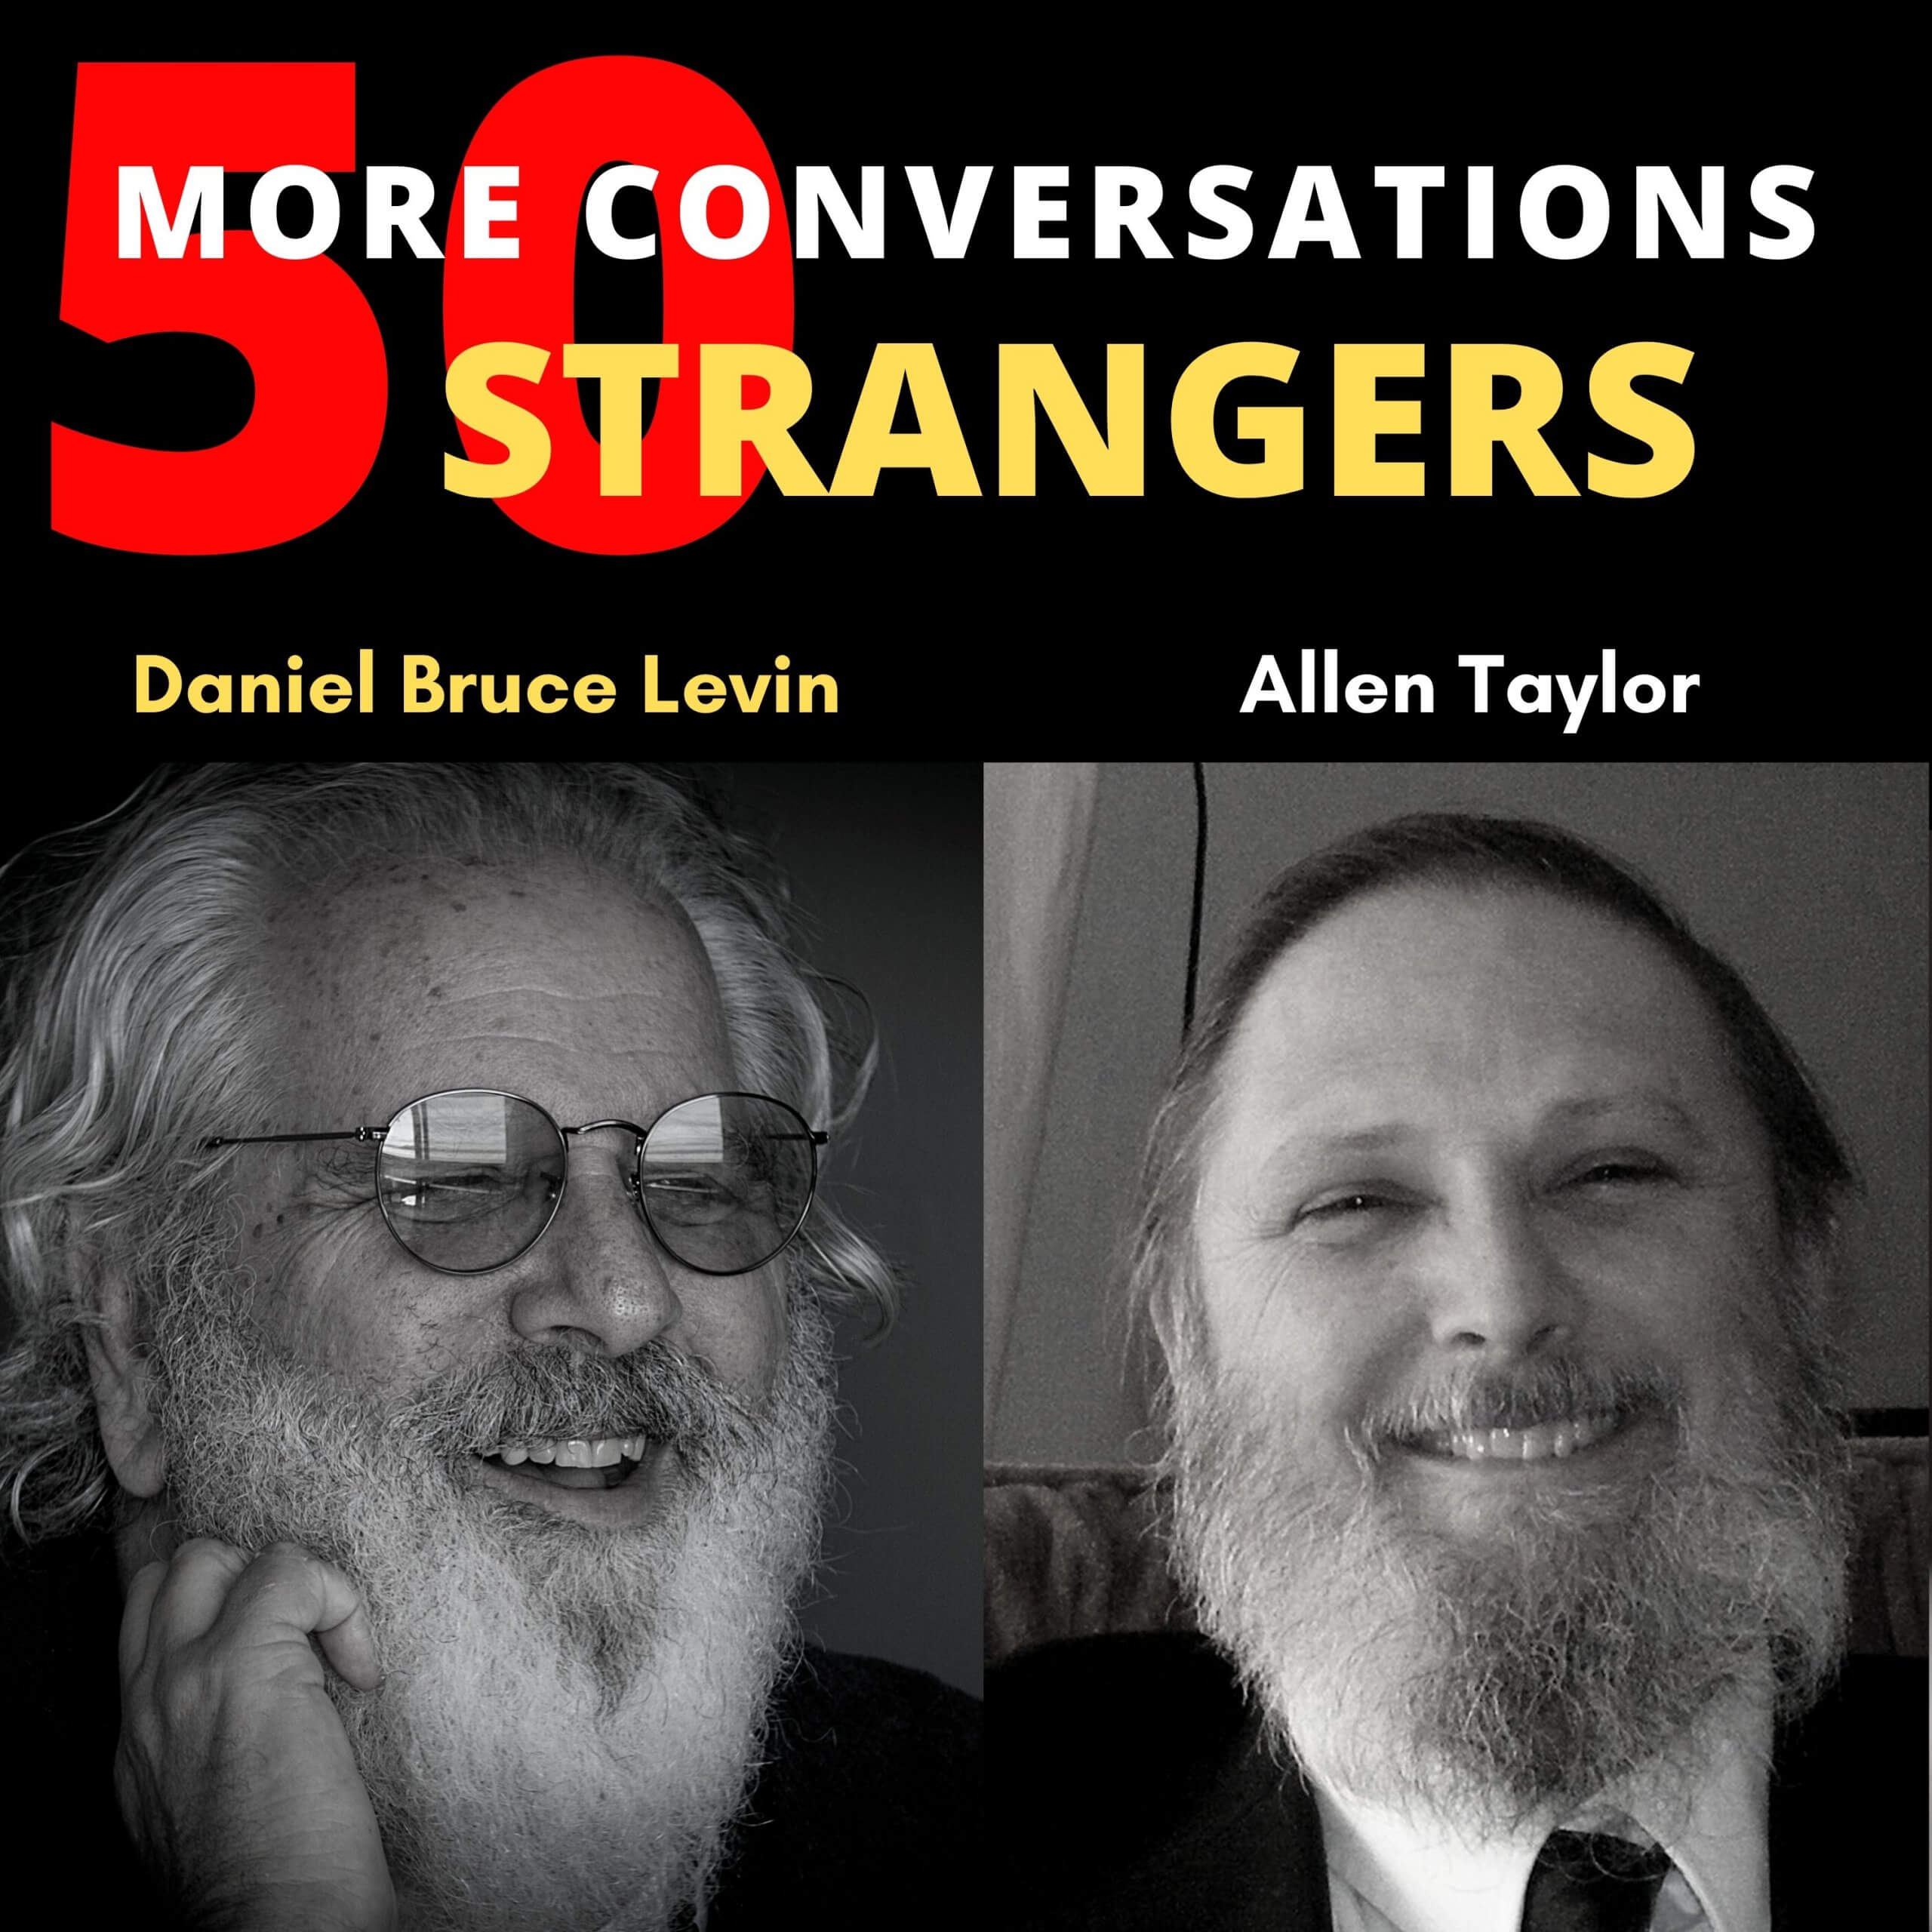 50 More Conversations with 50 More Strangers with Allen Taylor